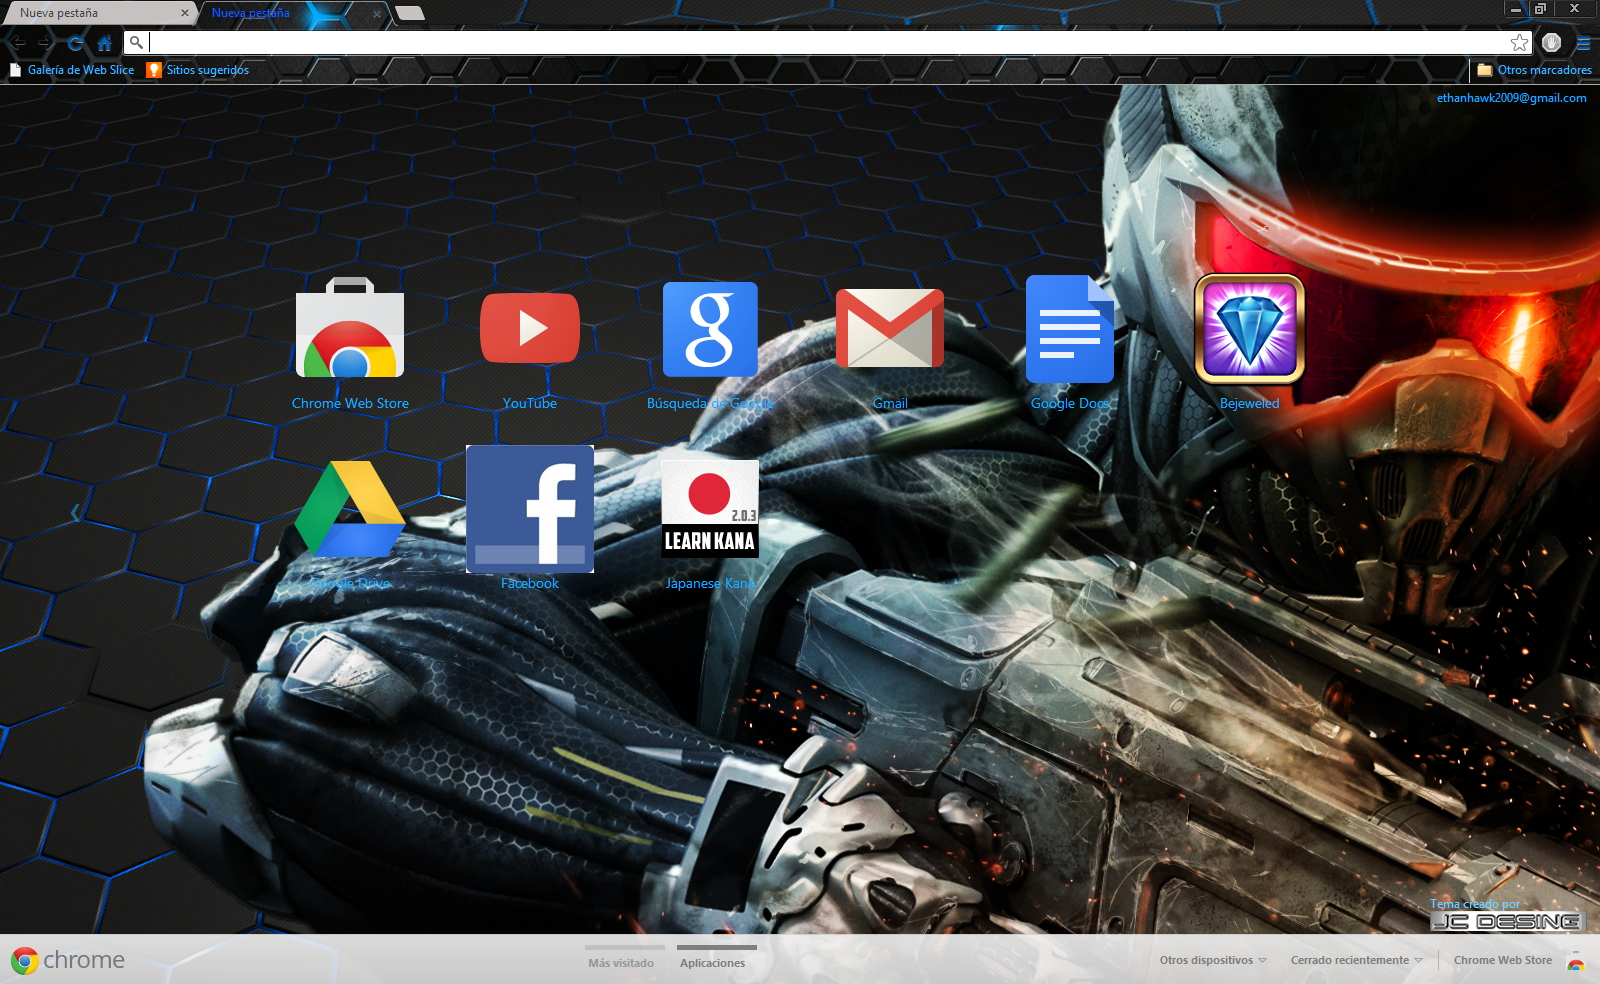 Google chrome themes video games -  Crysis Theme For Google Chrome By Jhonconnor